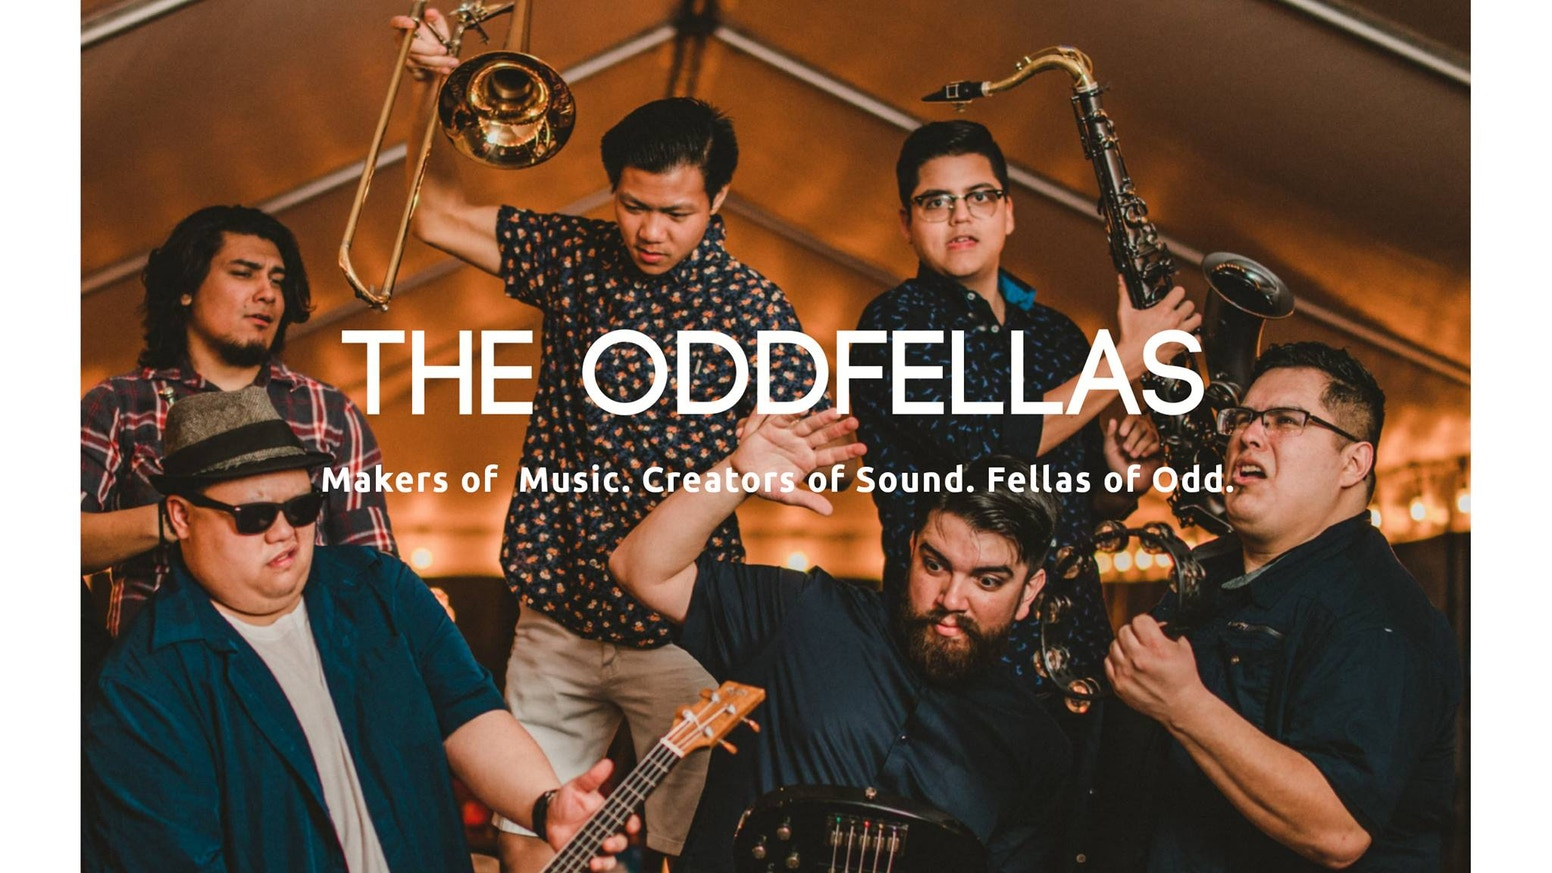 Chasing Dreams: Album Release & Tour by The OddFellas